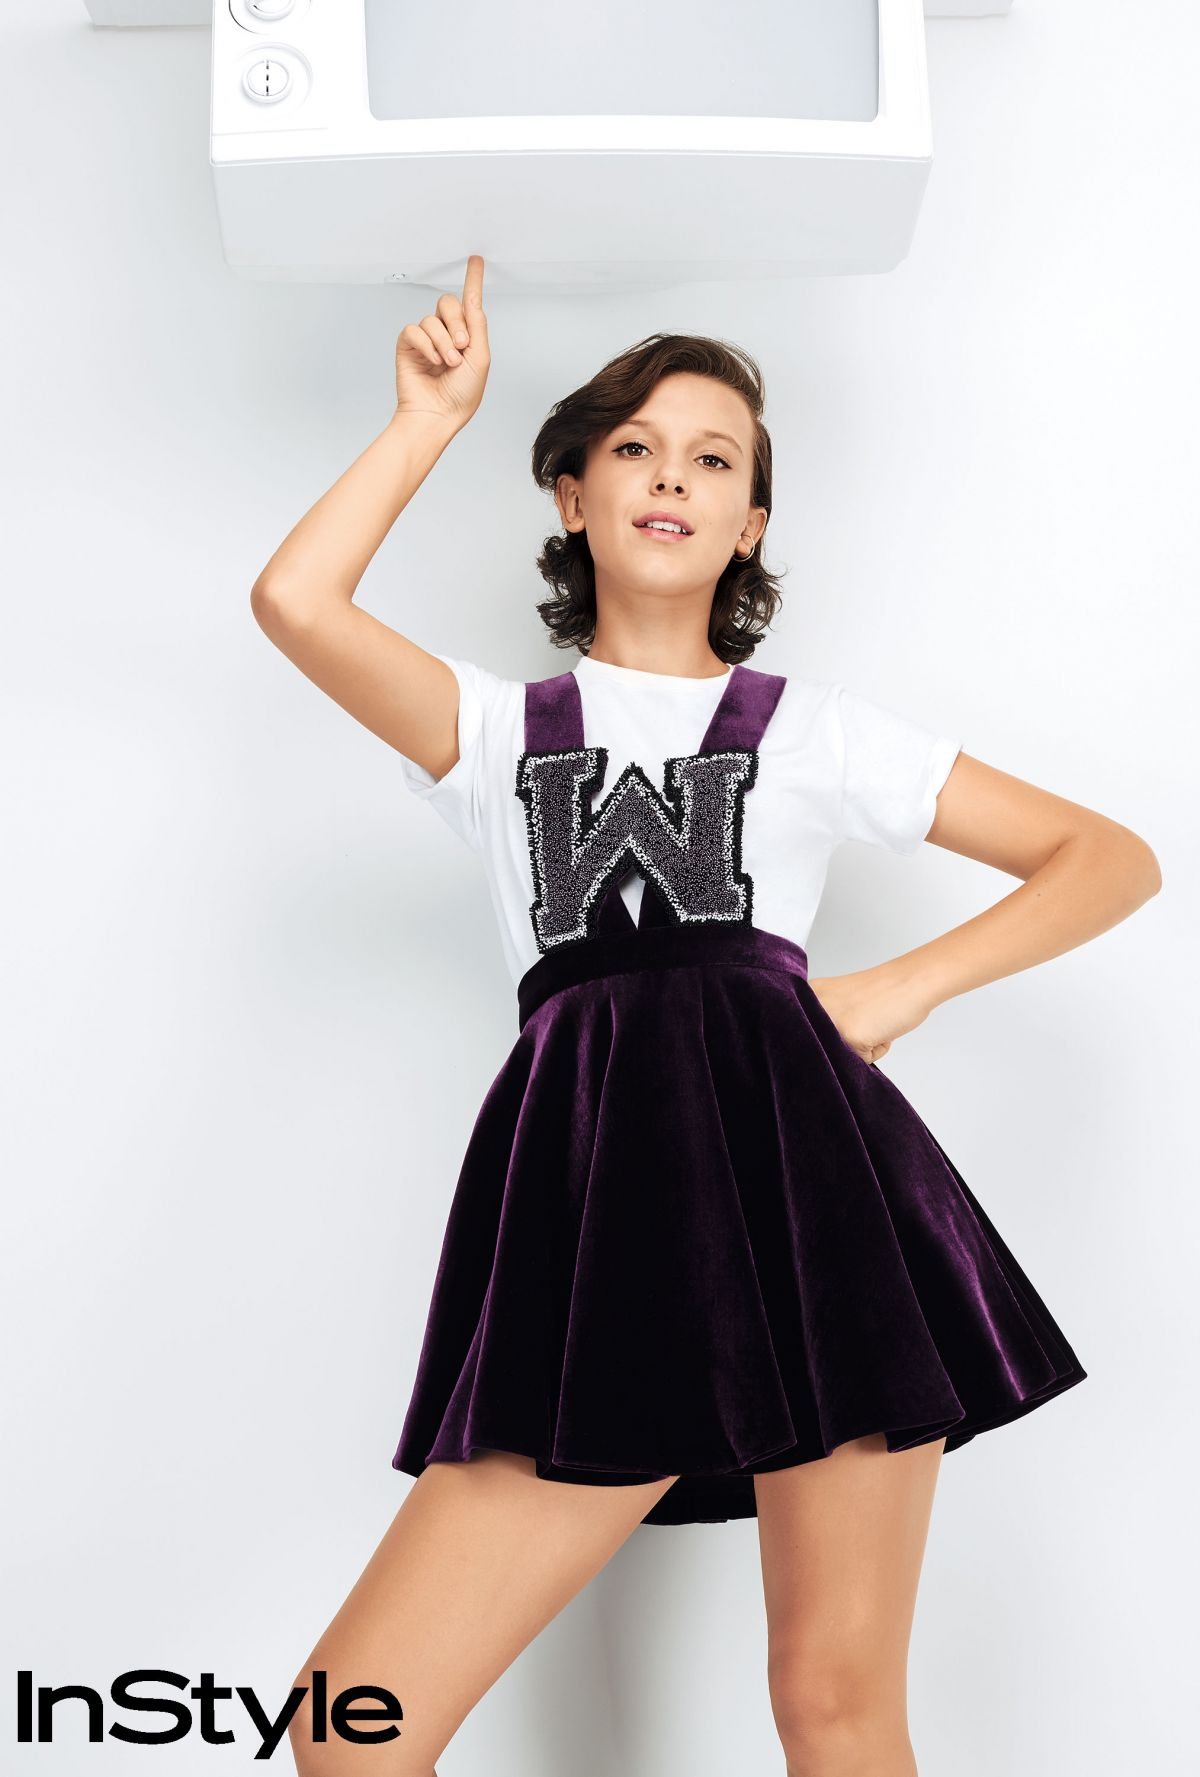 millie bobby brown - photo #30